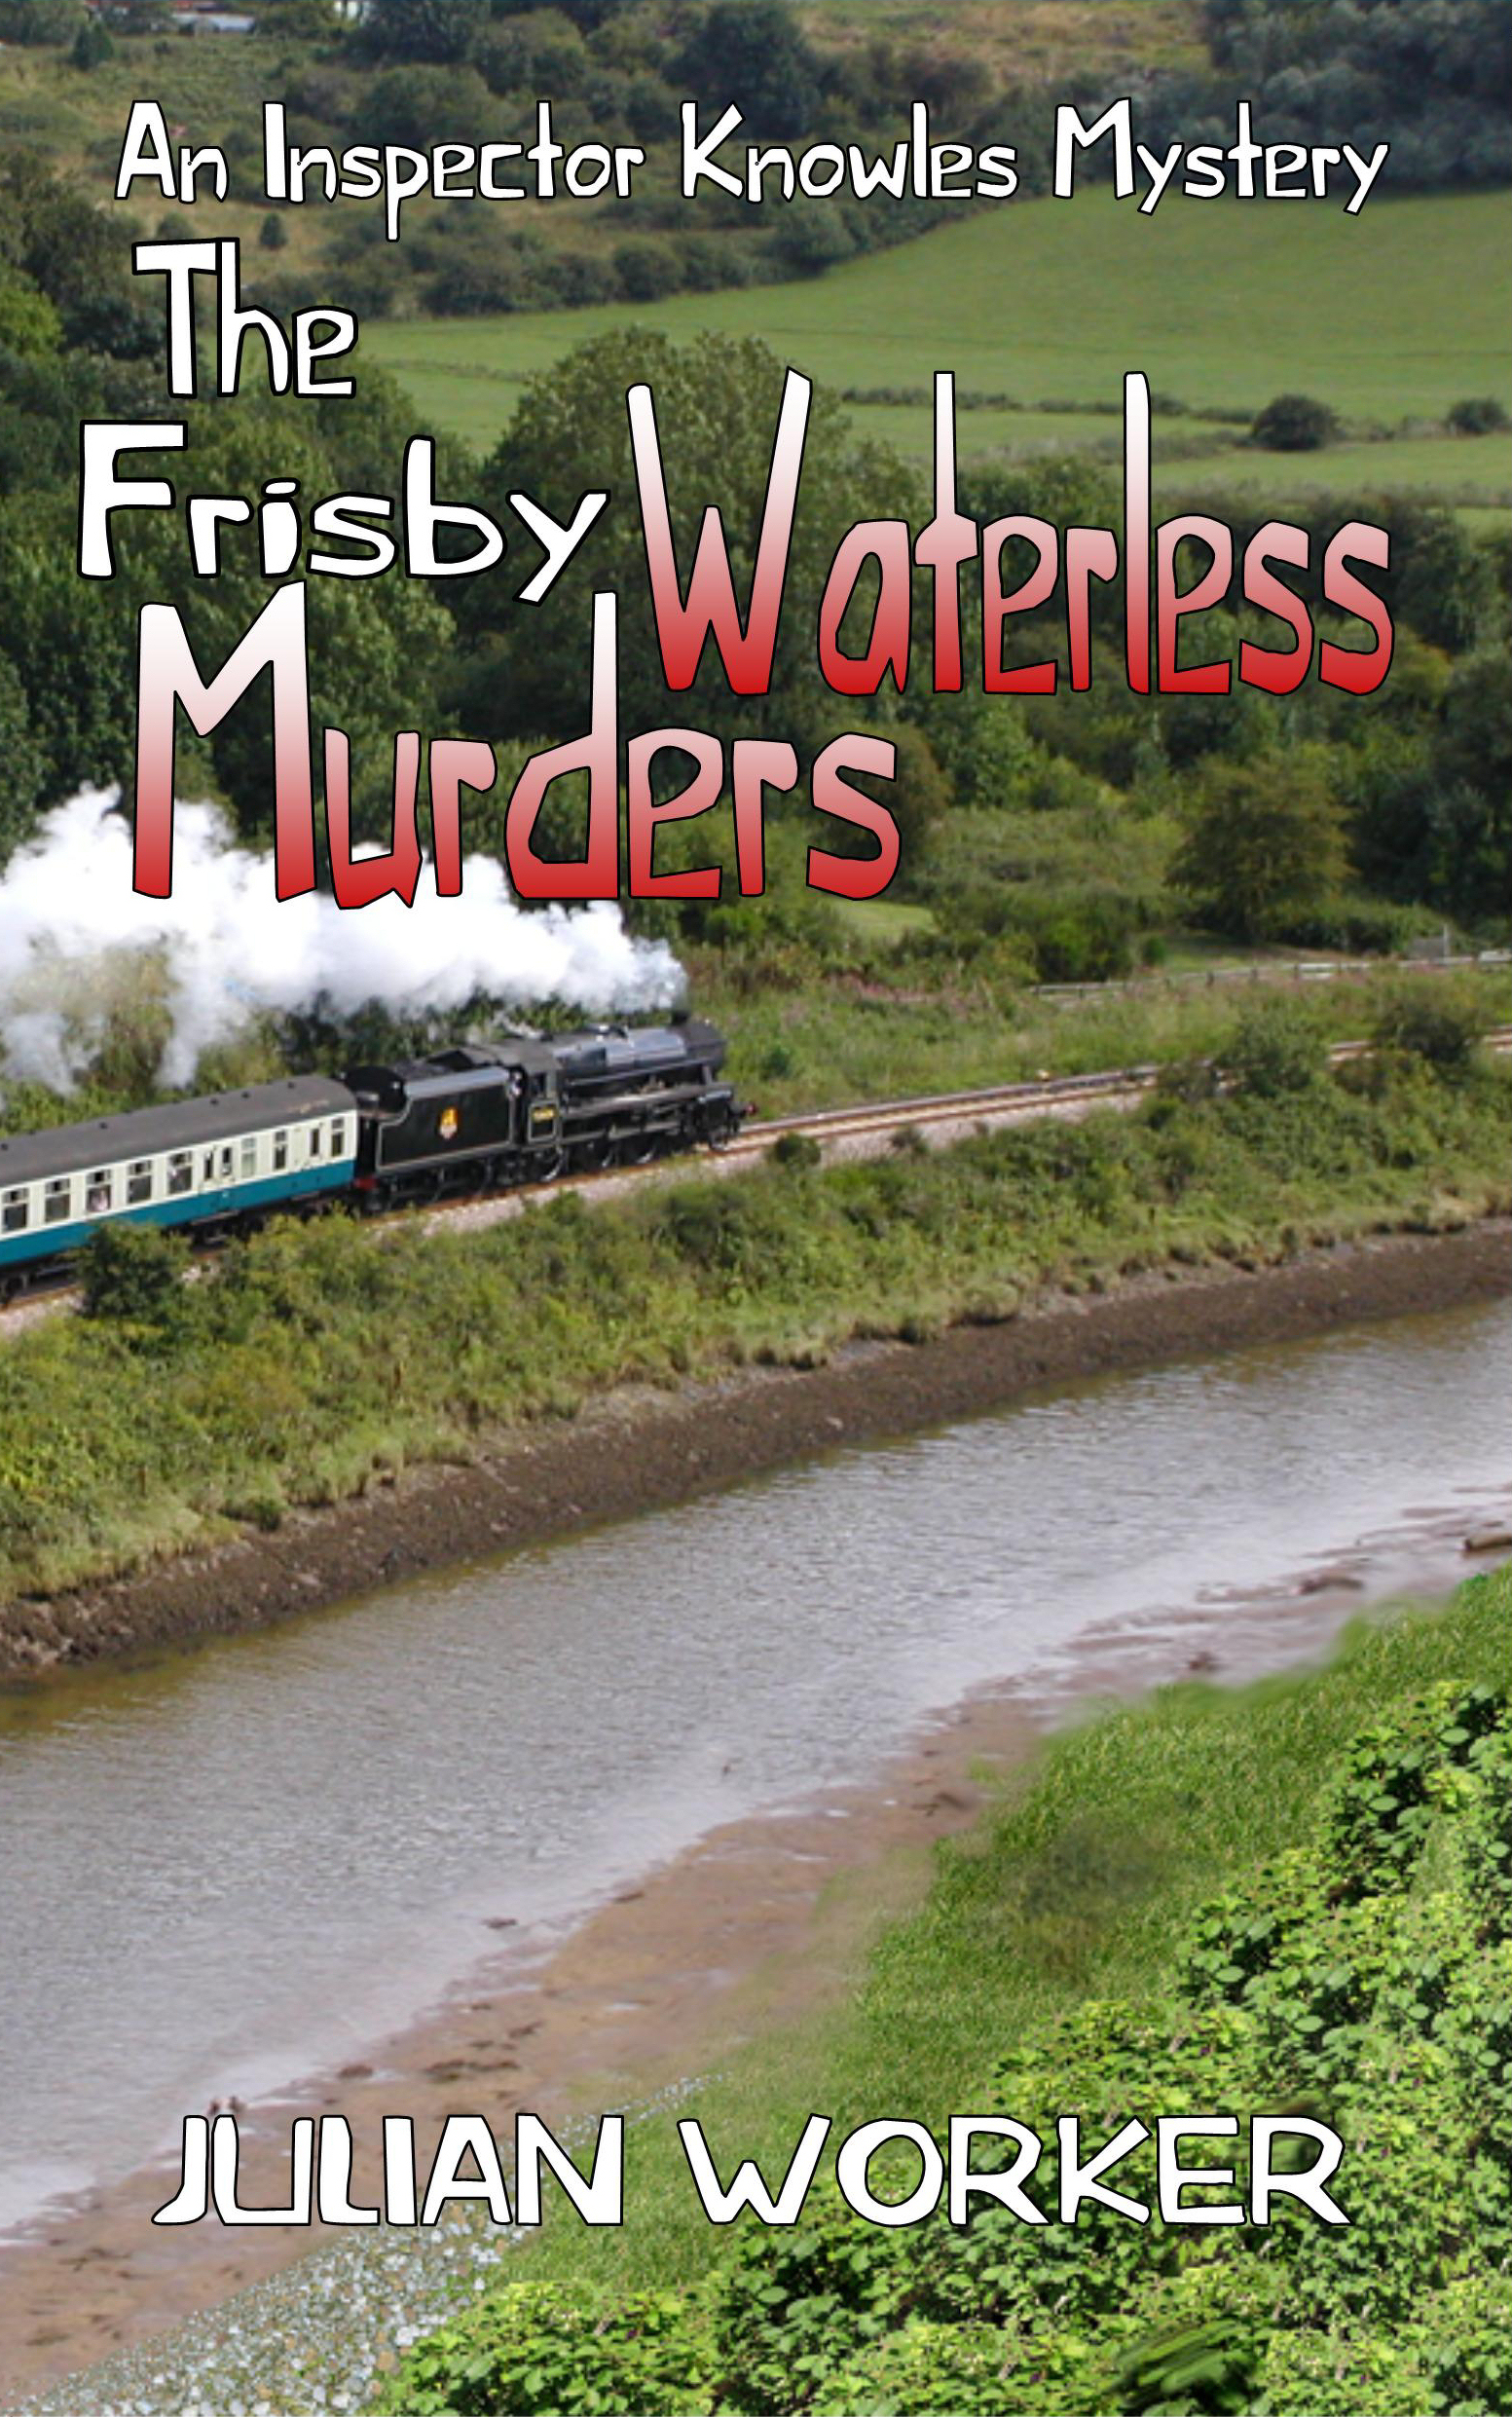 Frisby Waterless Murders – 9